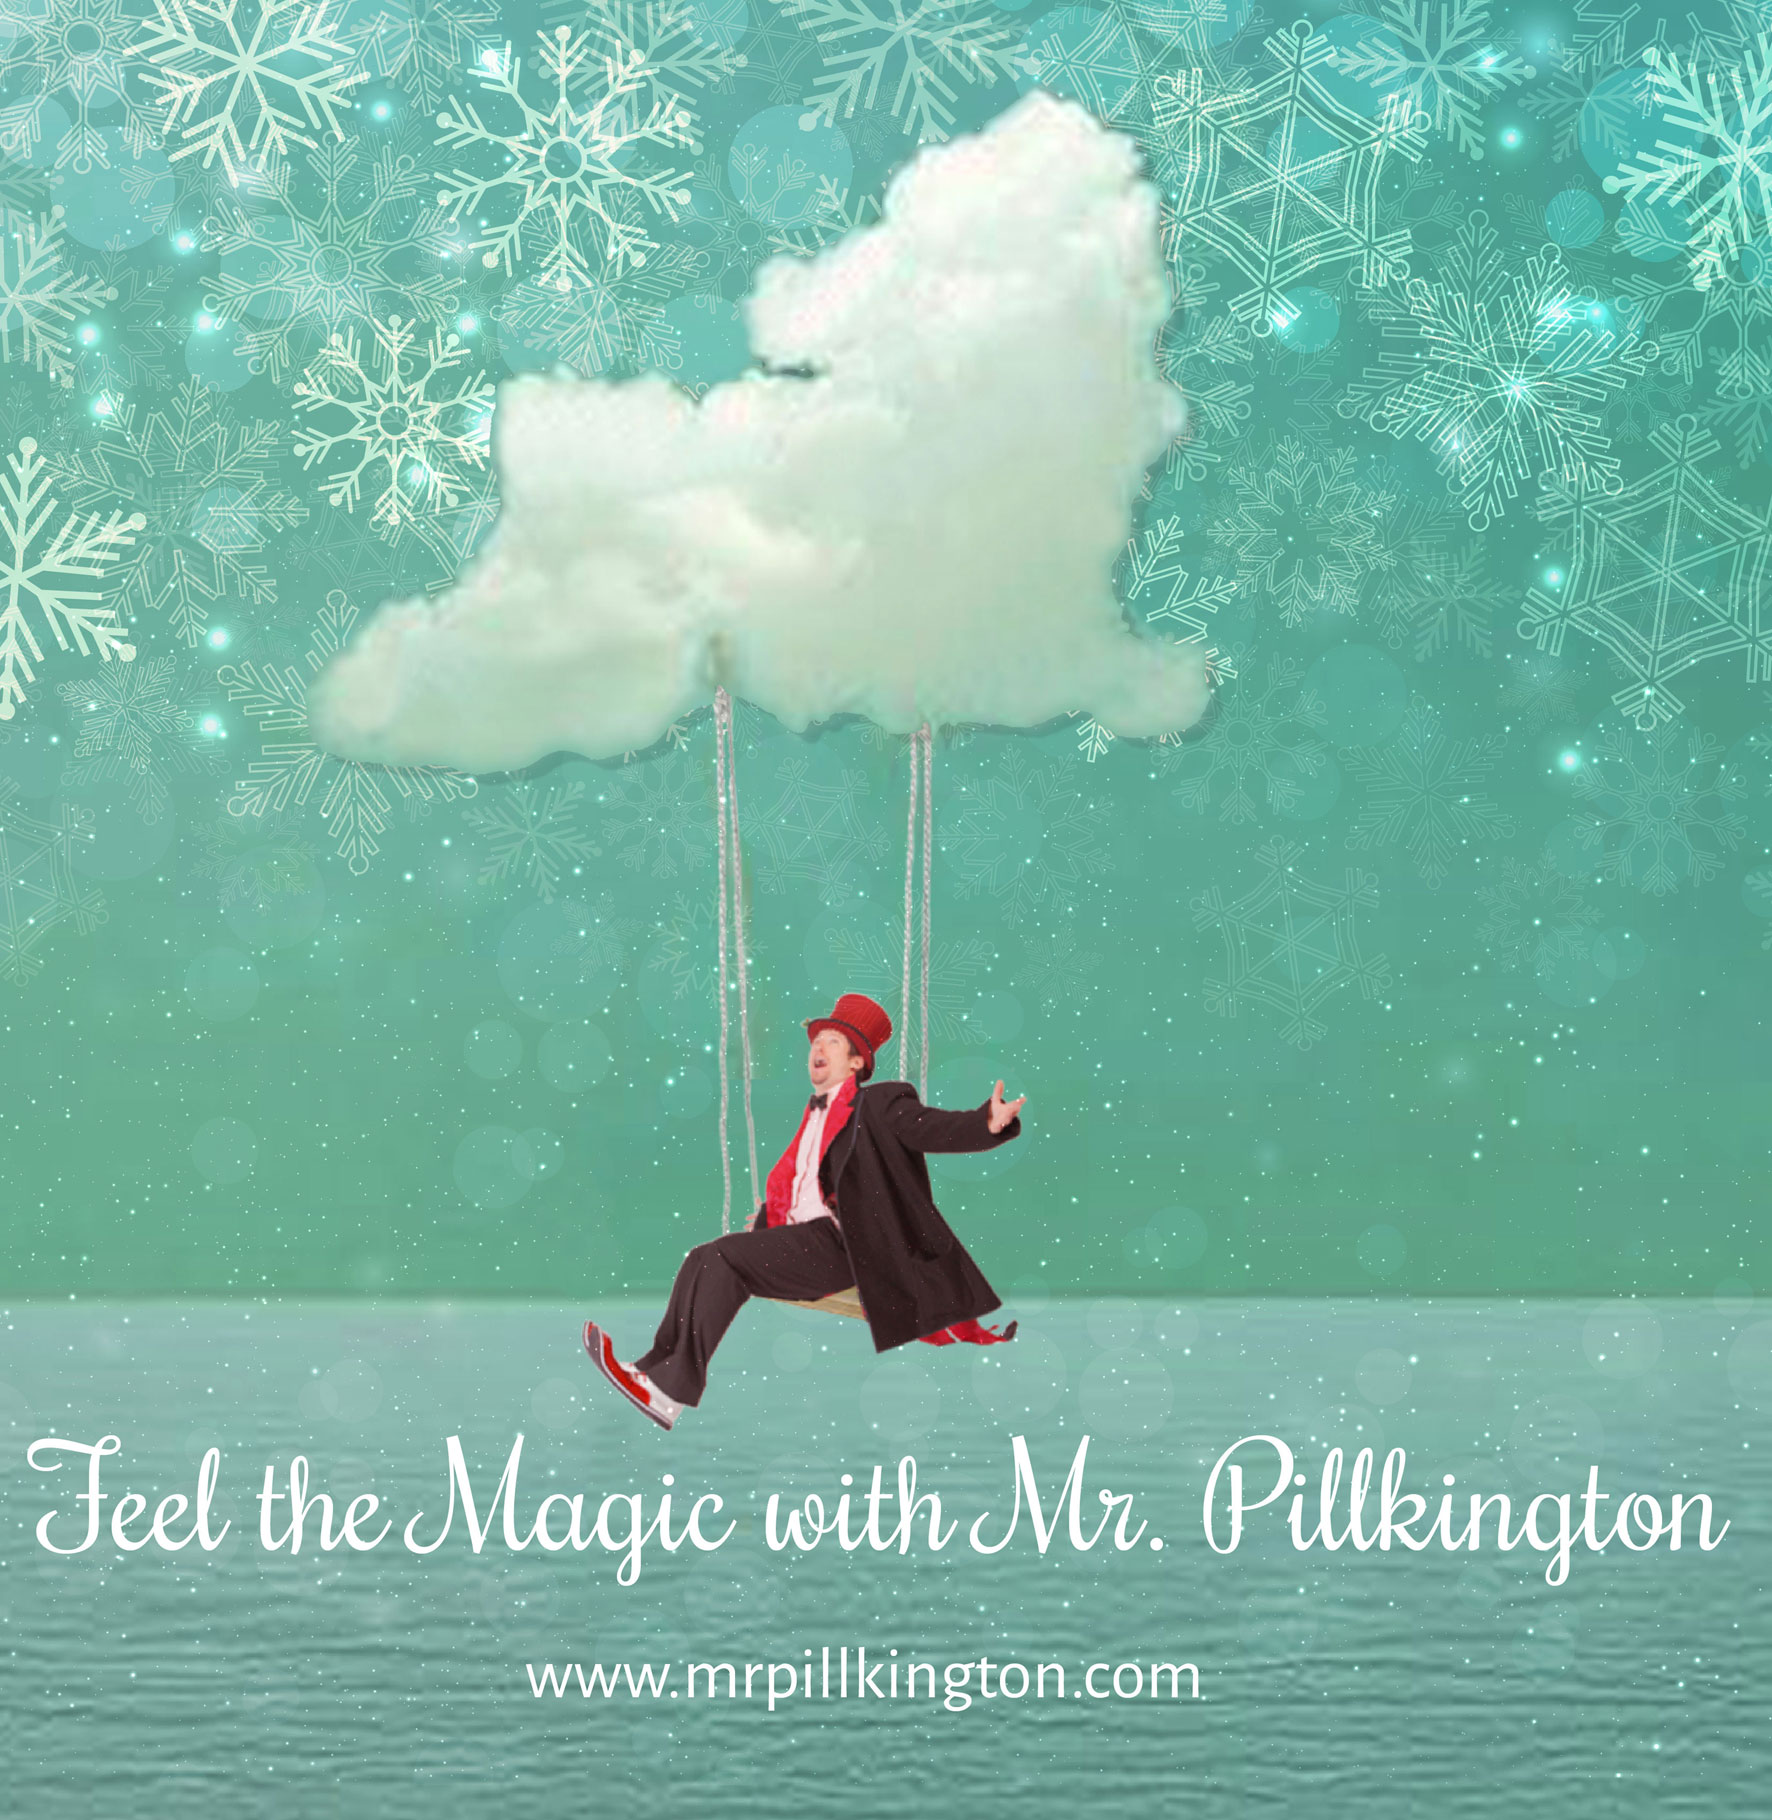 feel-the-magic-with-mr-pillkington01